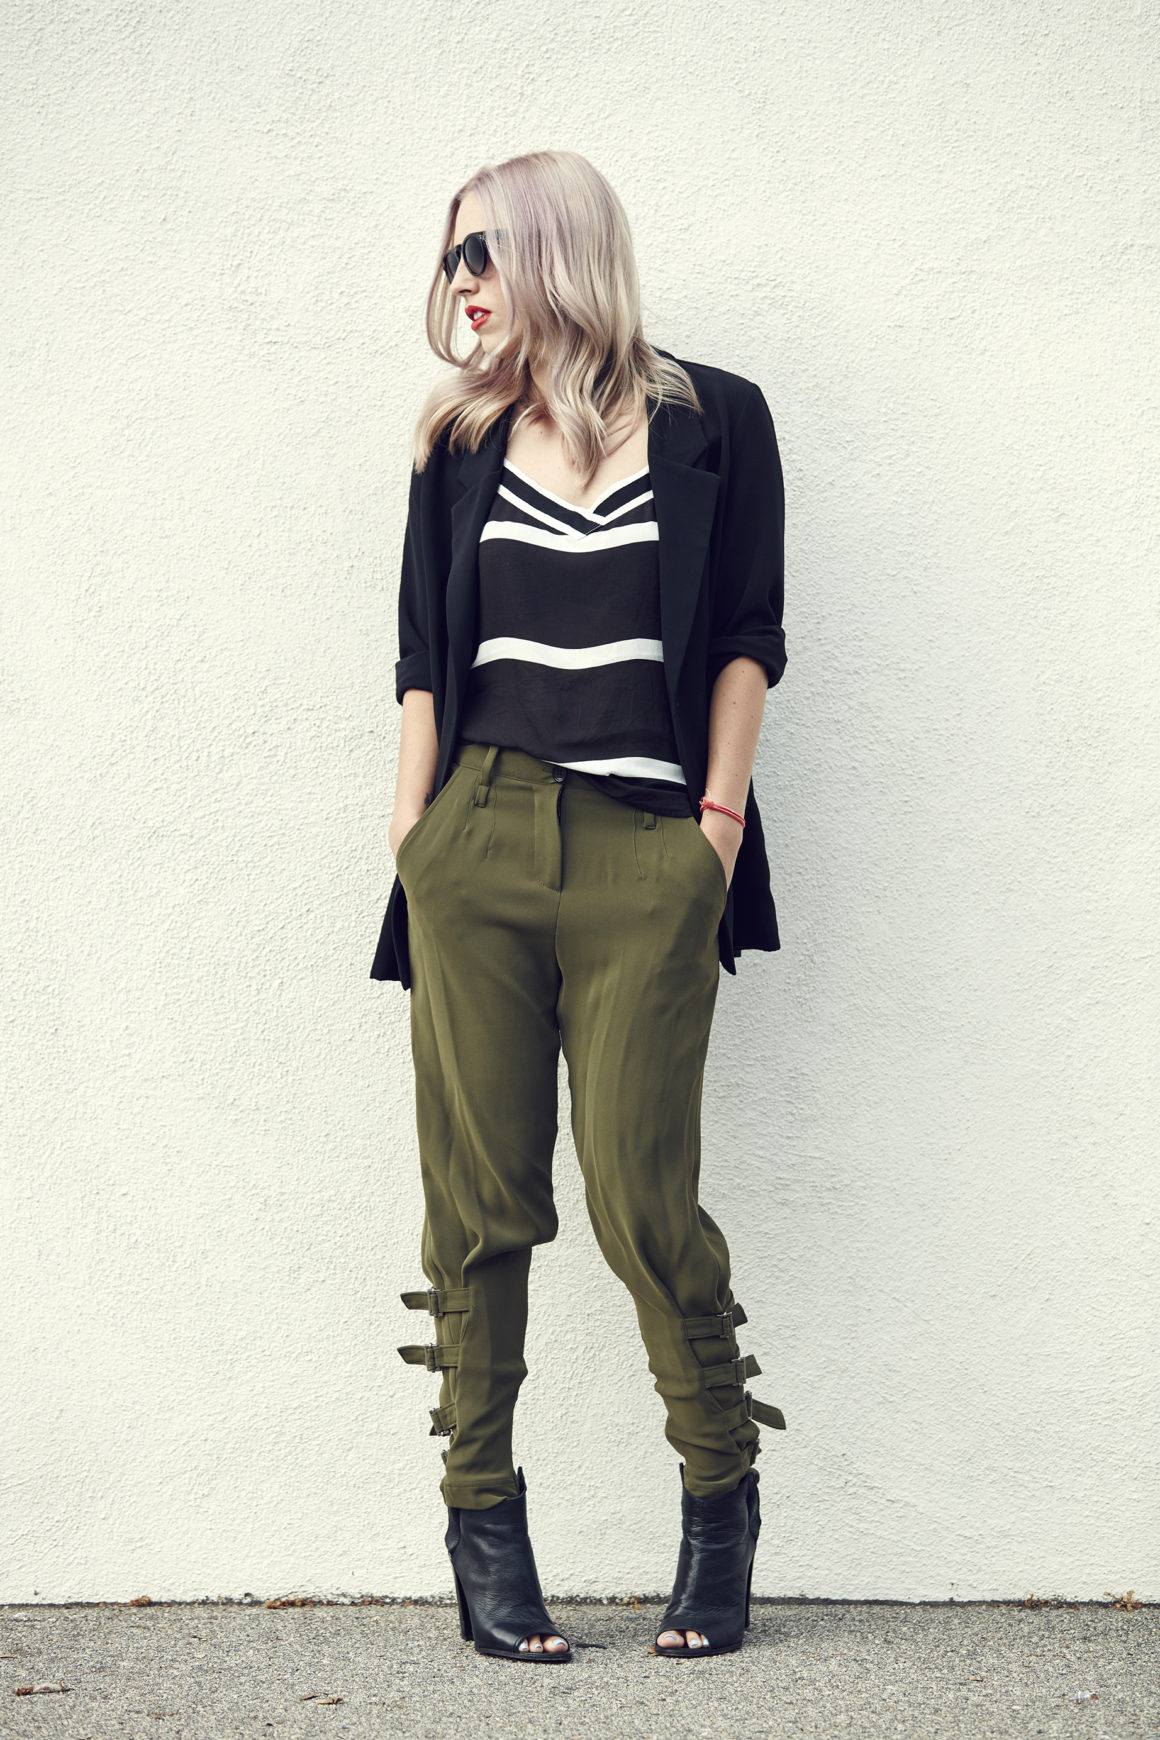 Low Rise // High Contrast   Late Summer Style